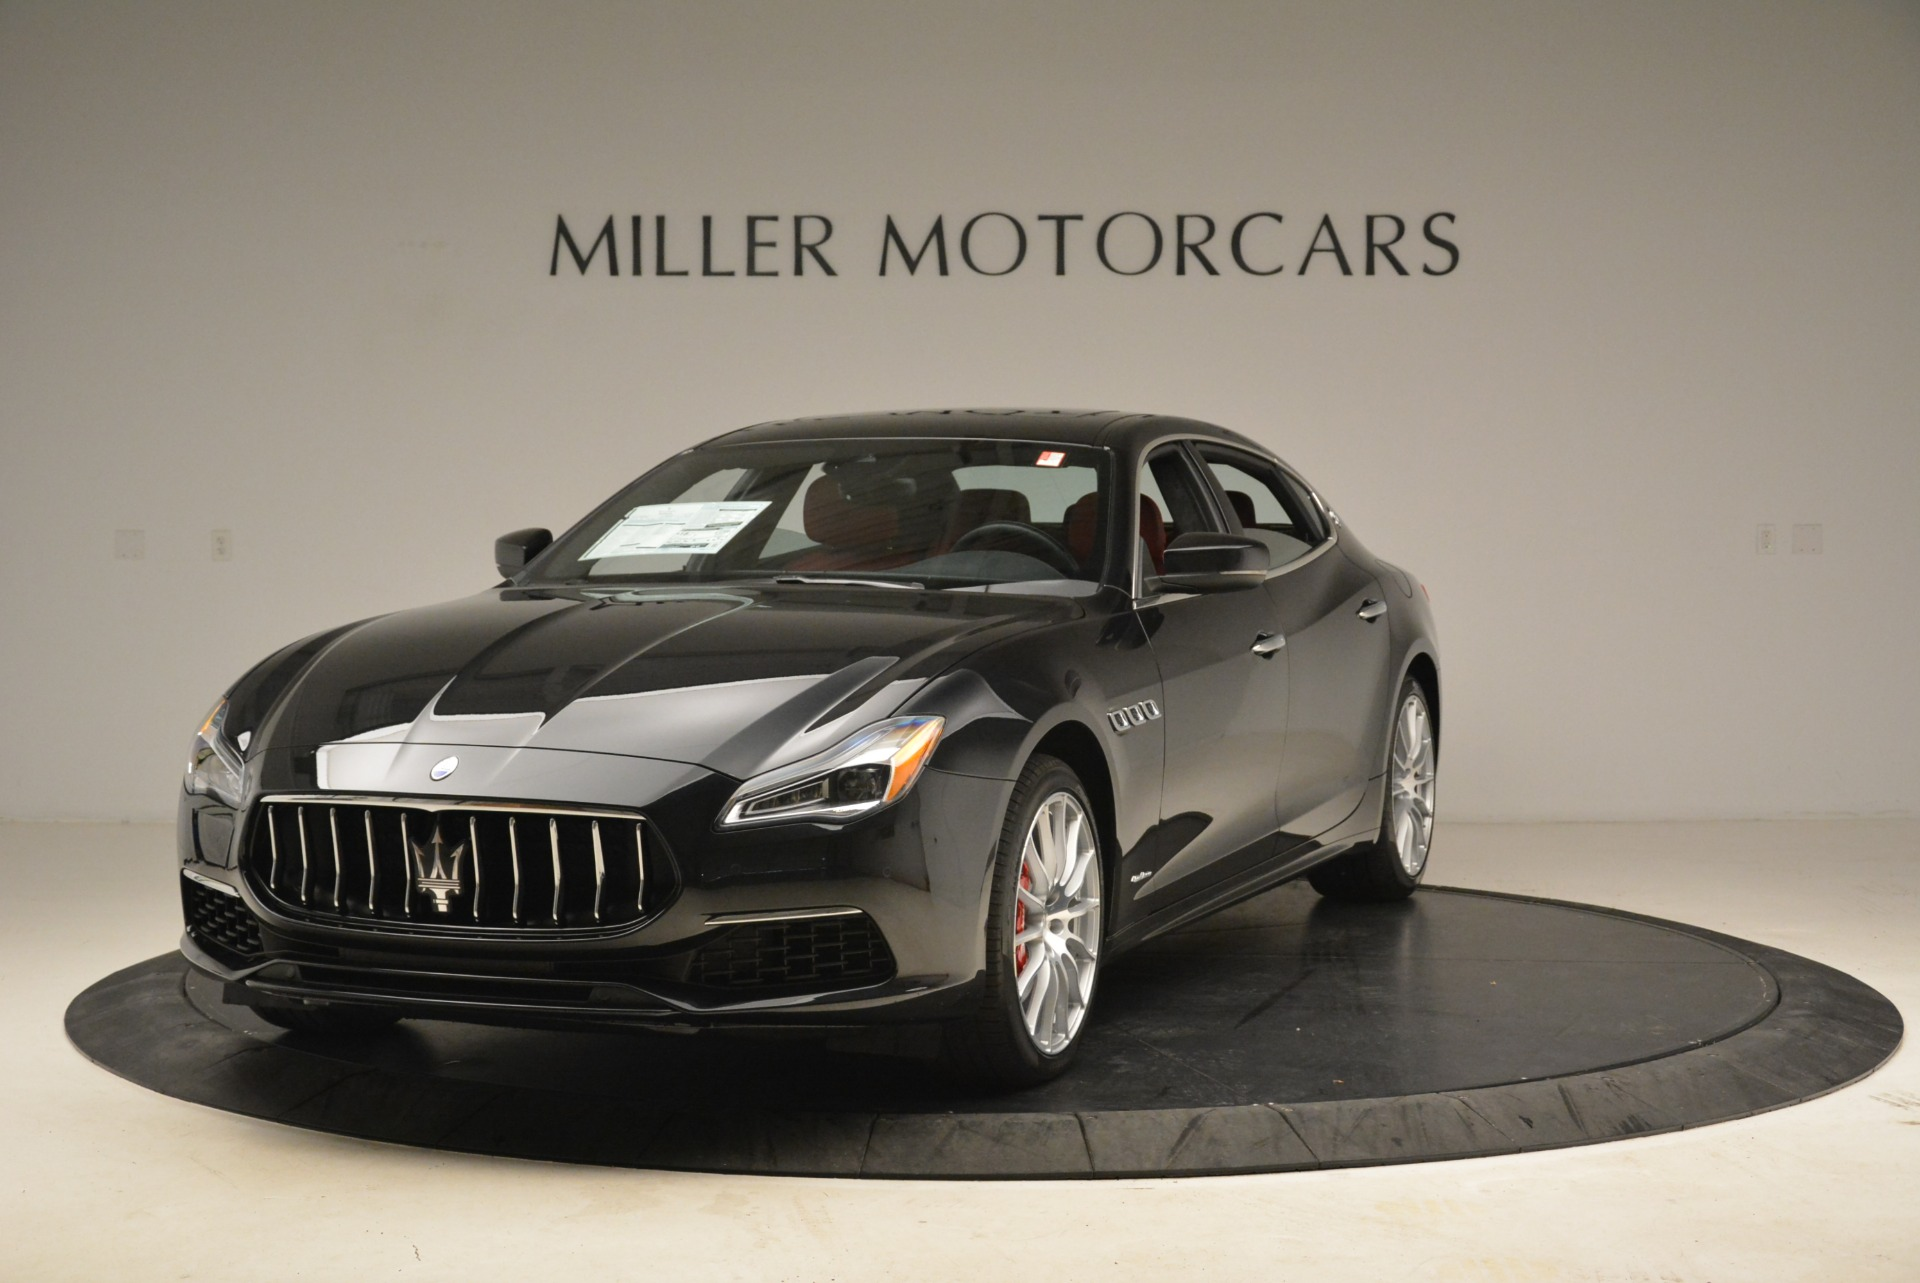 New 2018 Maserati Quattroporte S Q4 GranLusso for sale Sold at Rolls-Royce Motor Cars Greenwich in Greenwich CT 06830 1